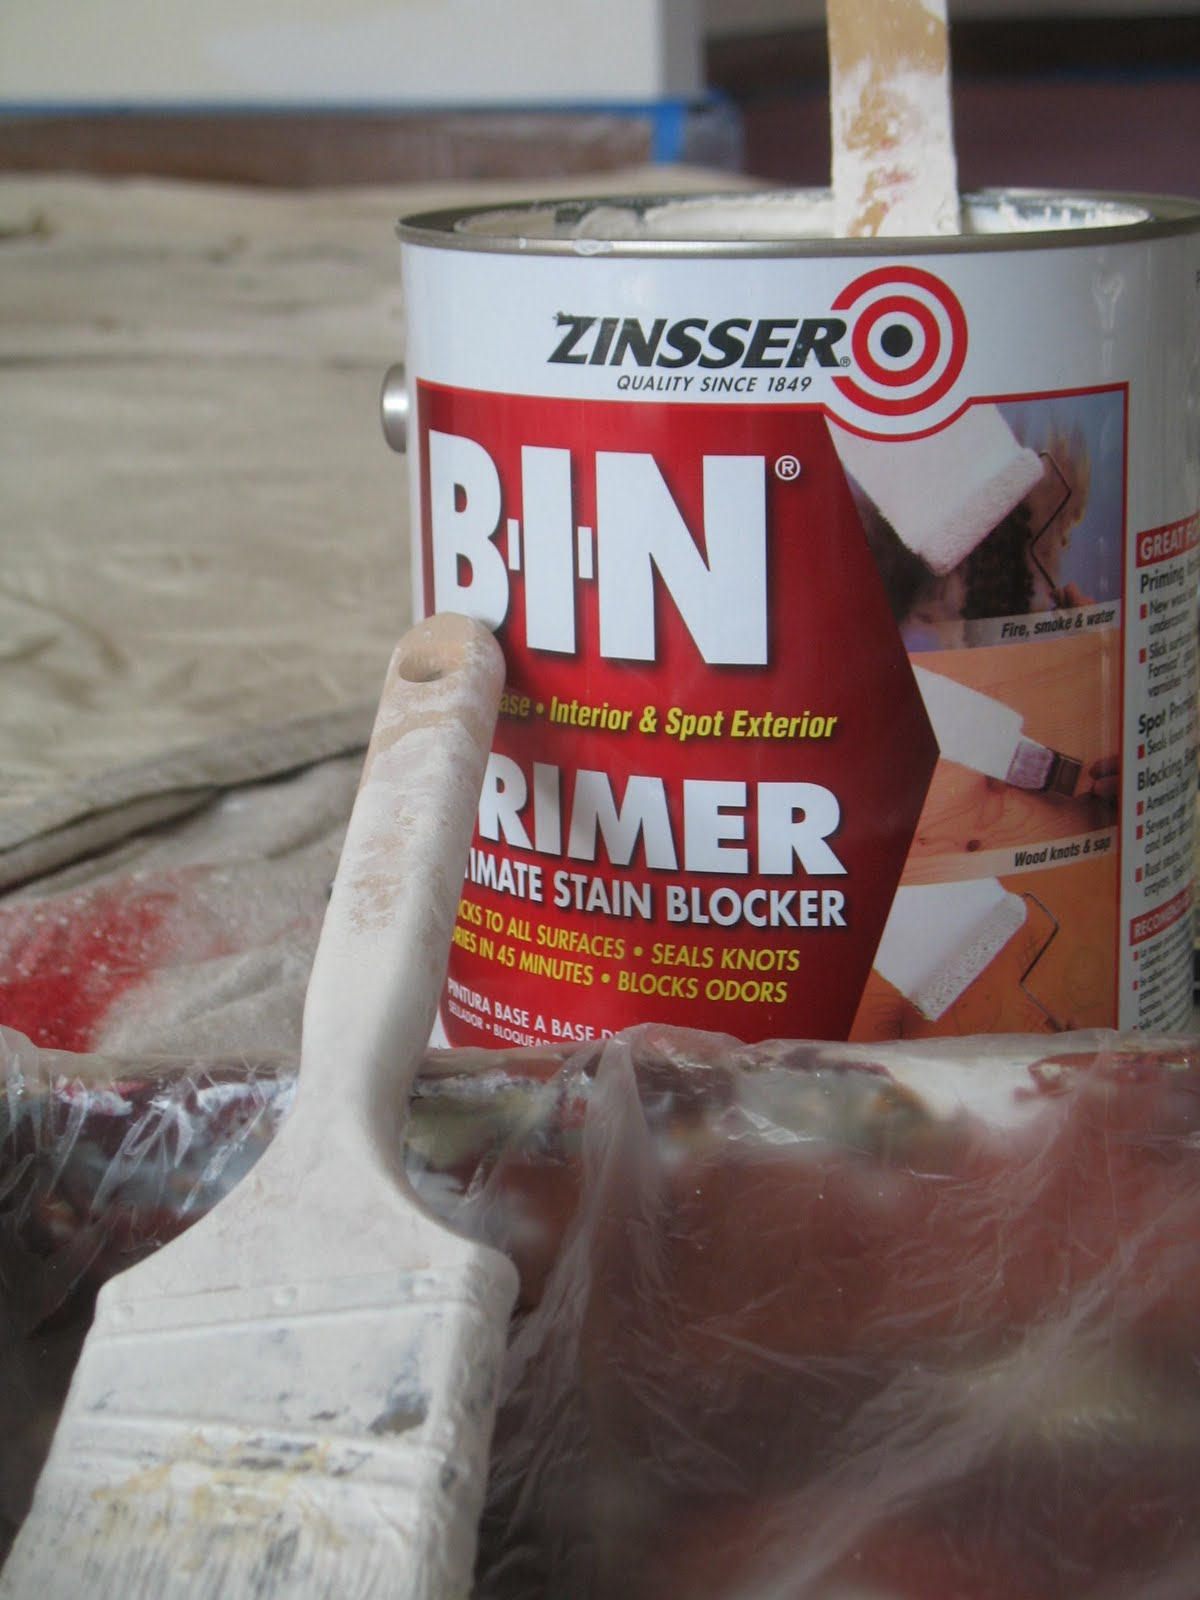 The Chirp Zinsser S Bin Primer Proves Itself Again And